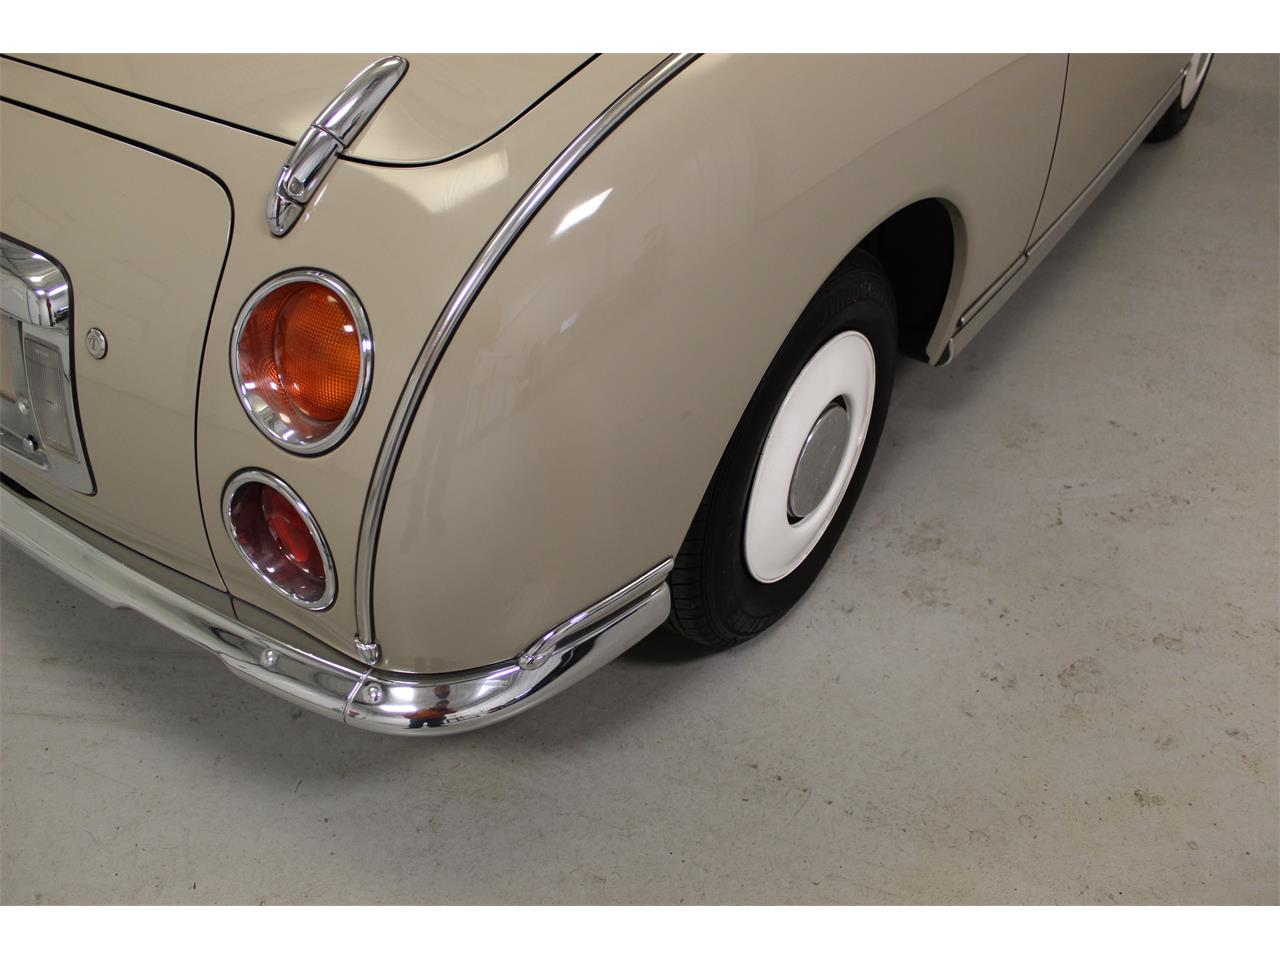 1991 Nissan Figaro for sale in Christiansburg, VA – photo 38